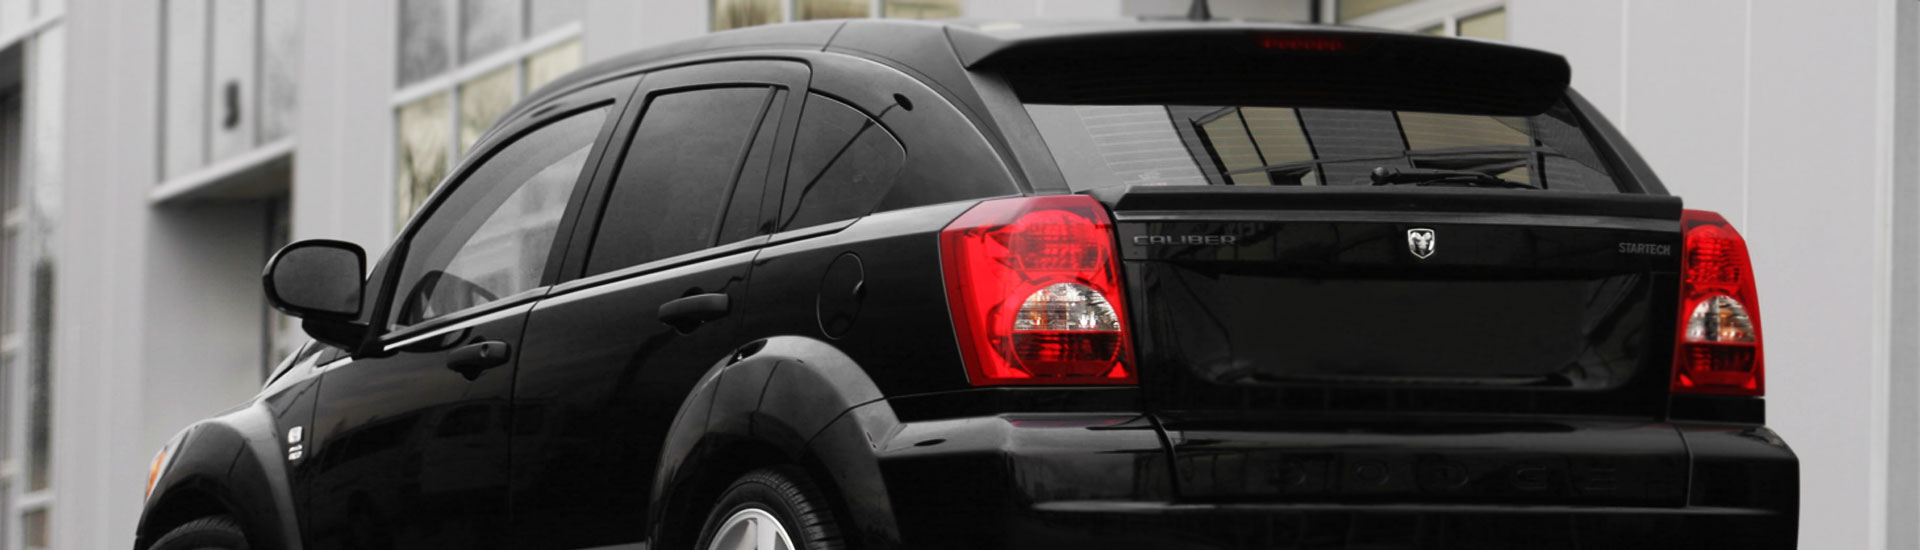 Dodge Caliber Window Tint